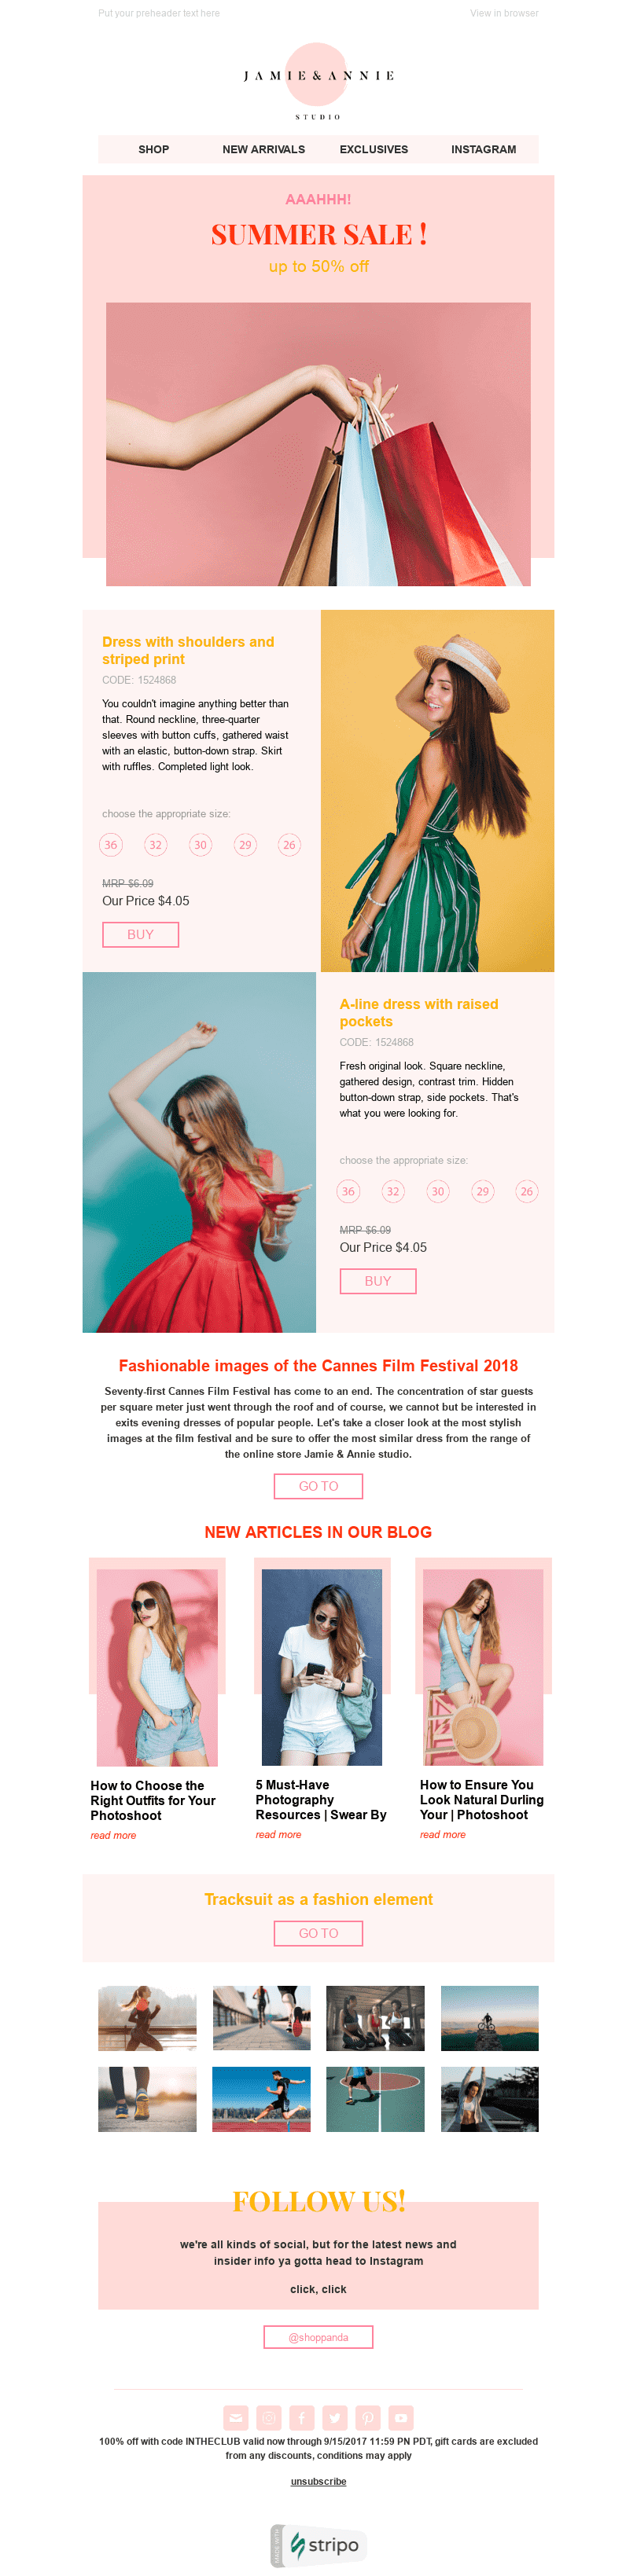 Promo Email Template «Summer Mood» for Fashion industry desktop view